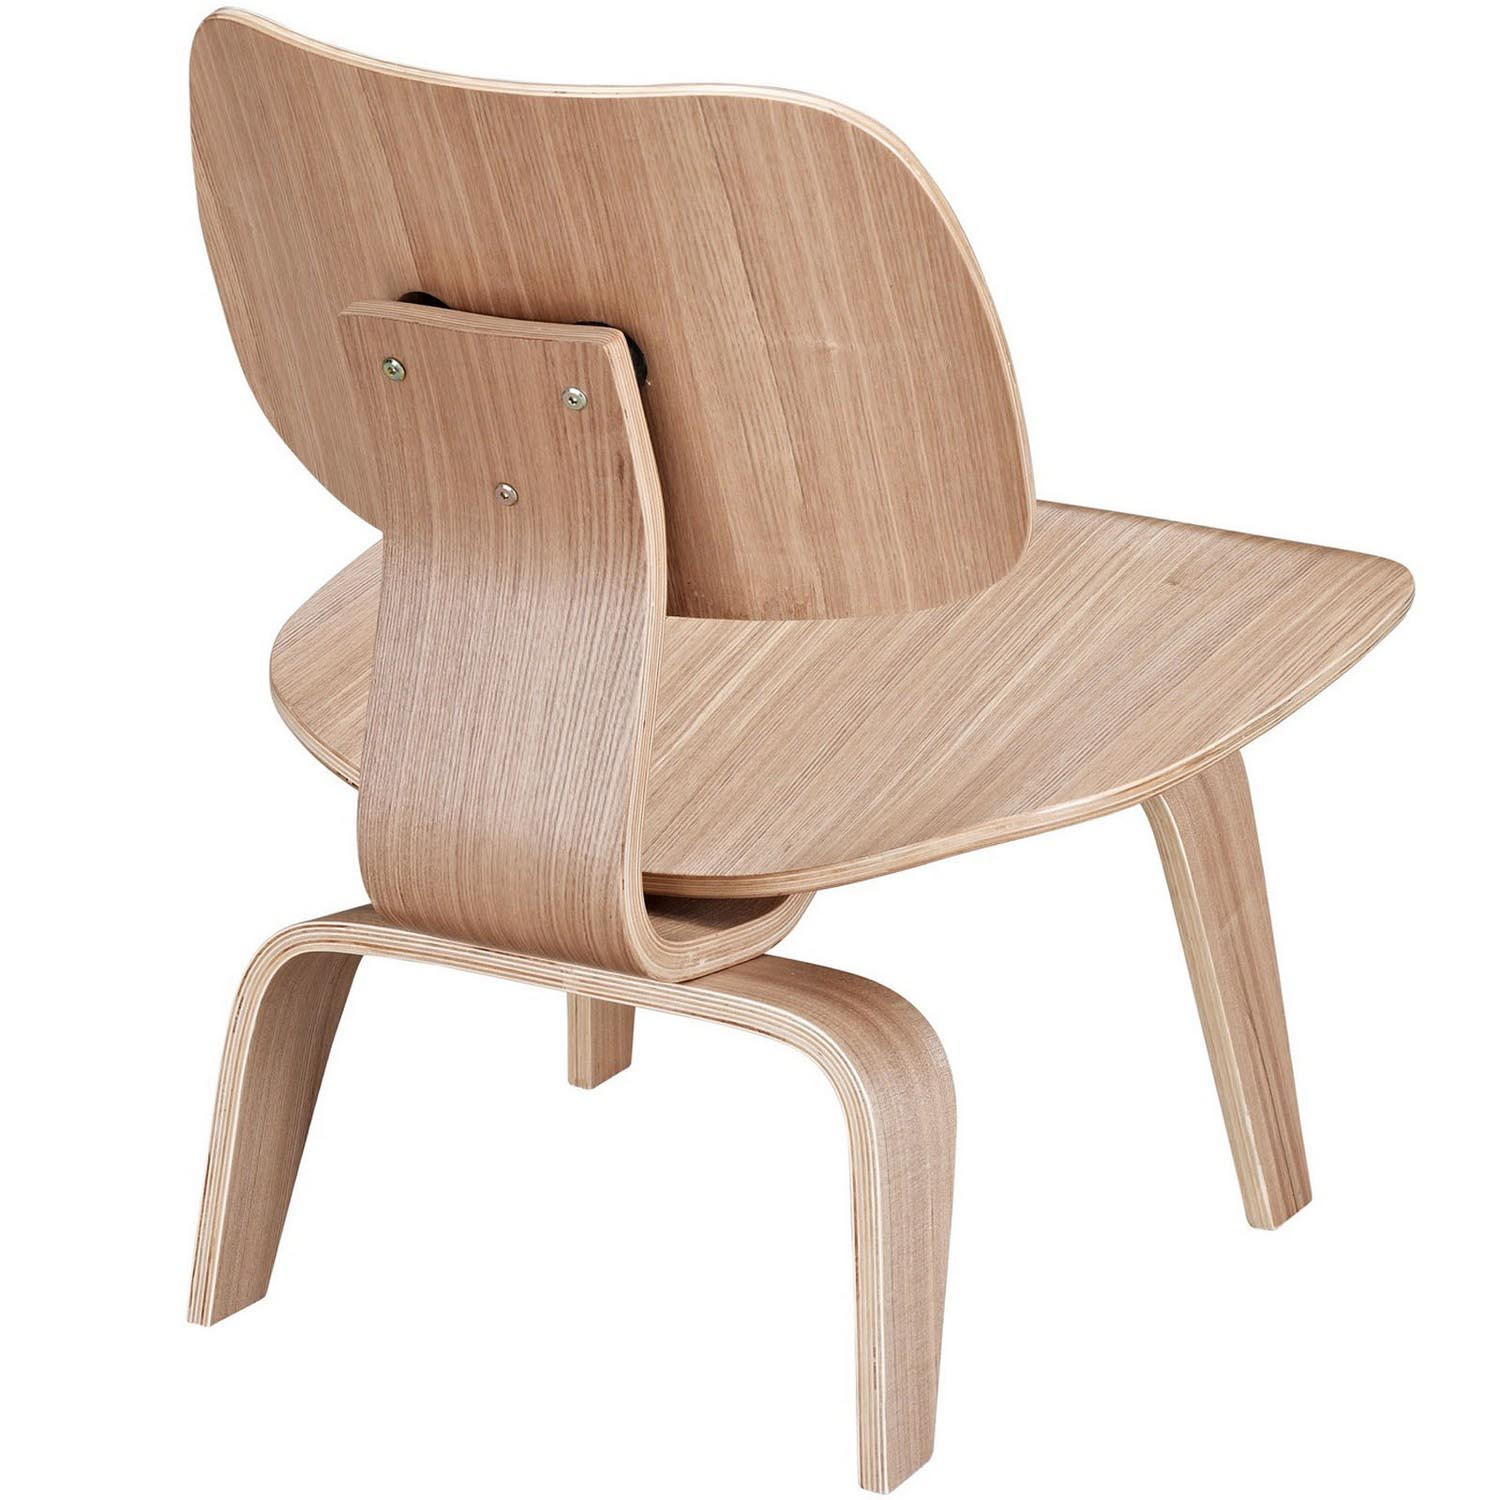 Modway Fathom Lounge Chair - Natural